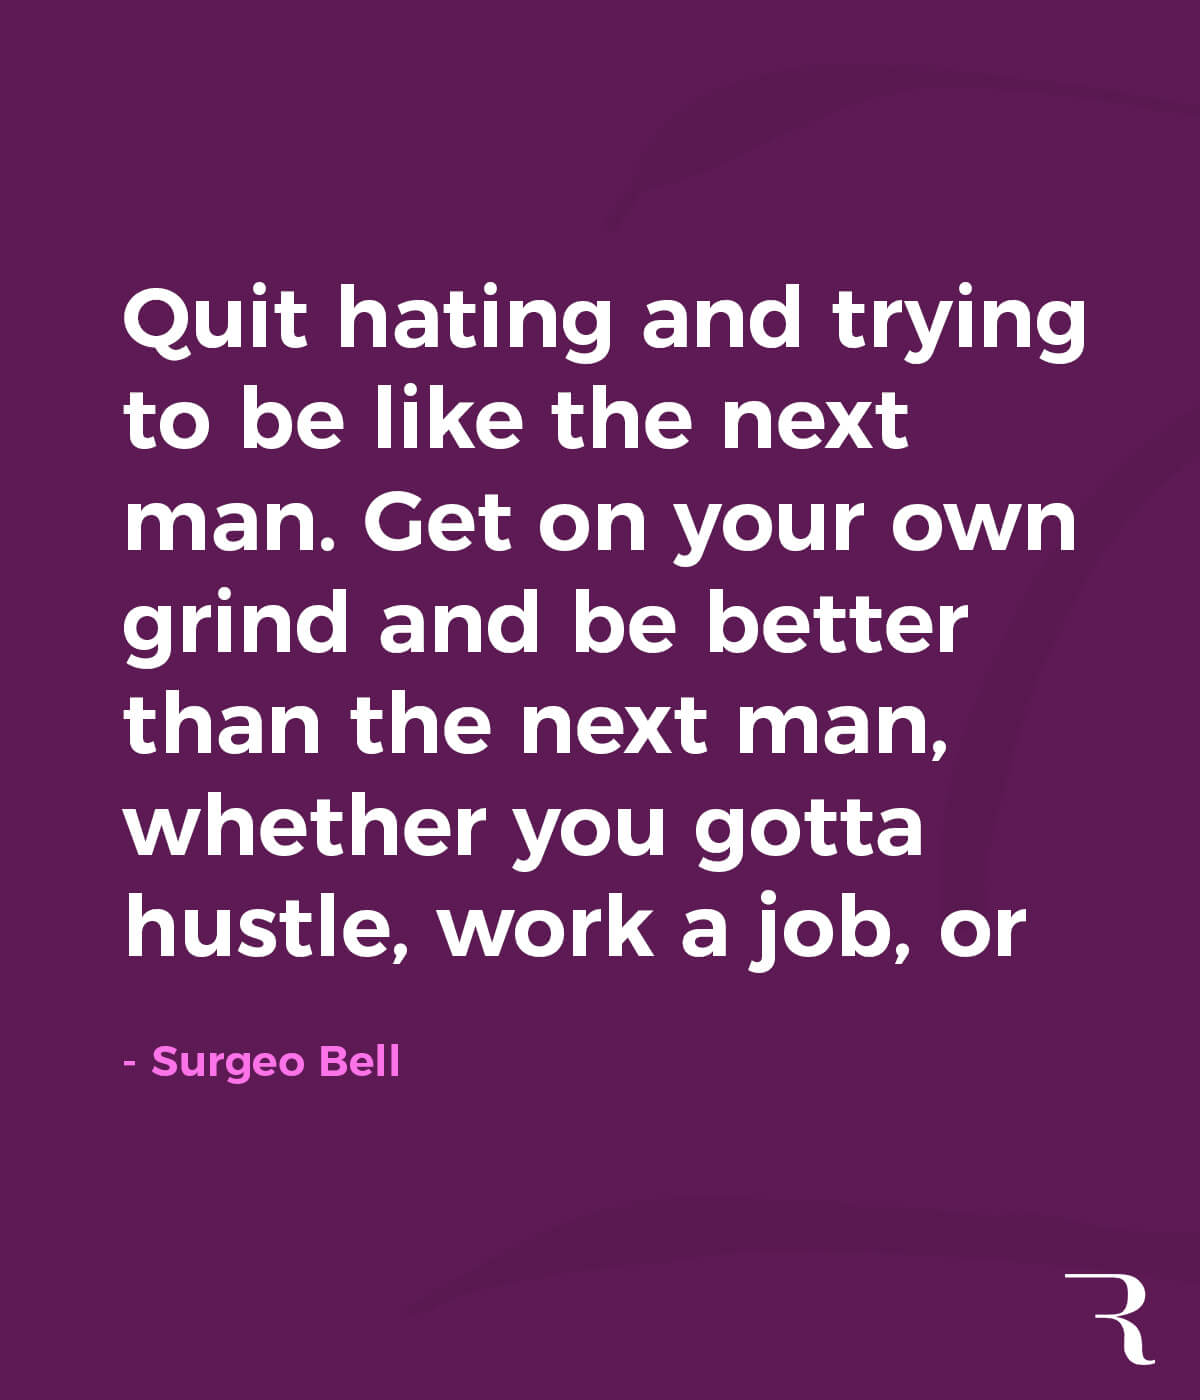 """Motivational Quotes: """"Quit hating and trying to be like the next man. Get on your own grind and be better than the next man, whether you gotta hustle, work a job, or whatever just do you."""" 112 Motivational Quotes to Be a Better Entrepreneur"""